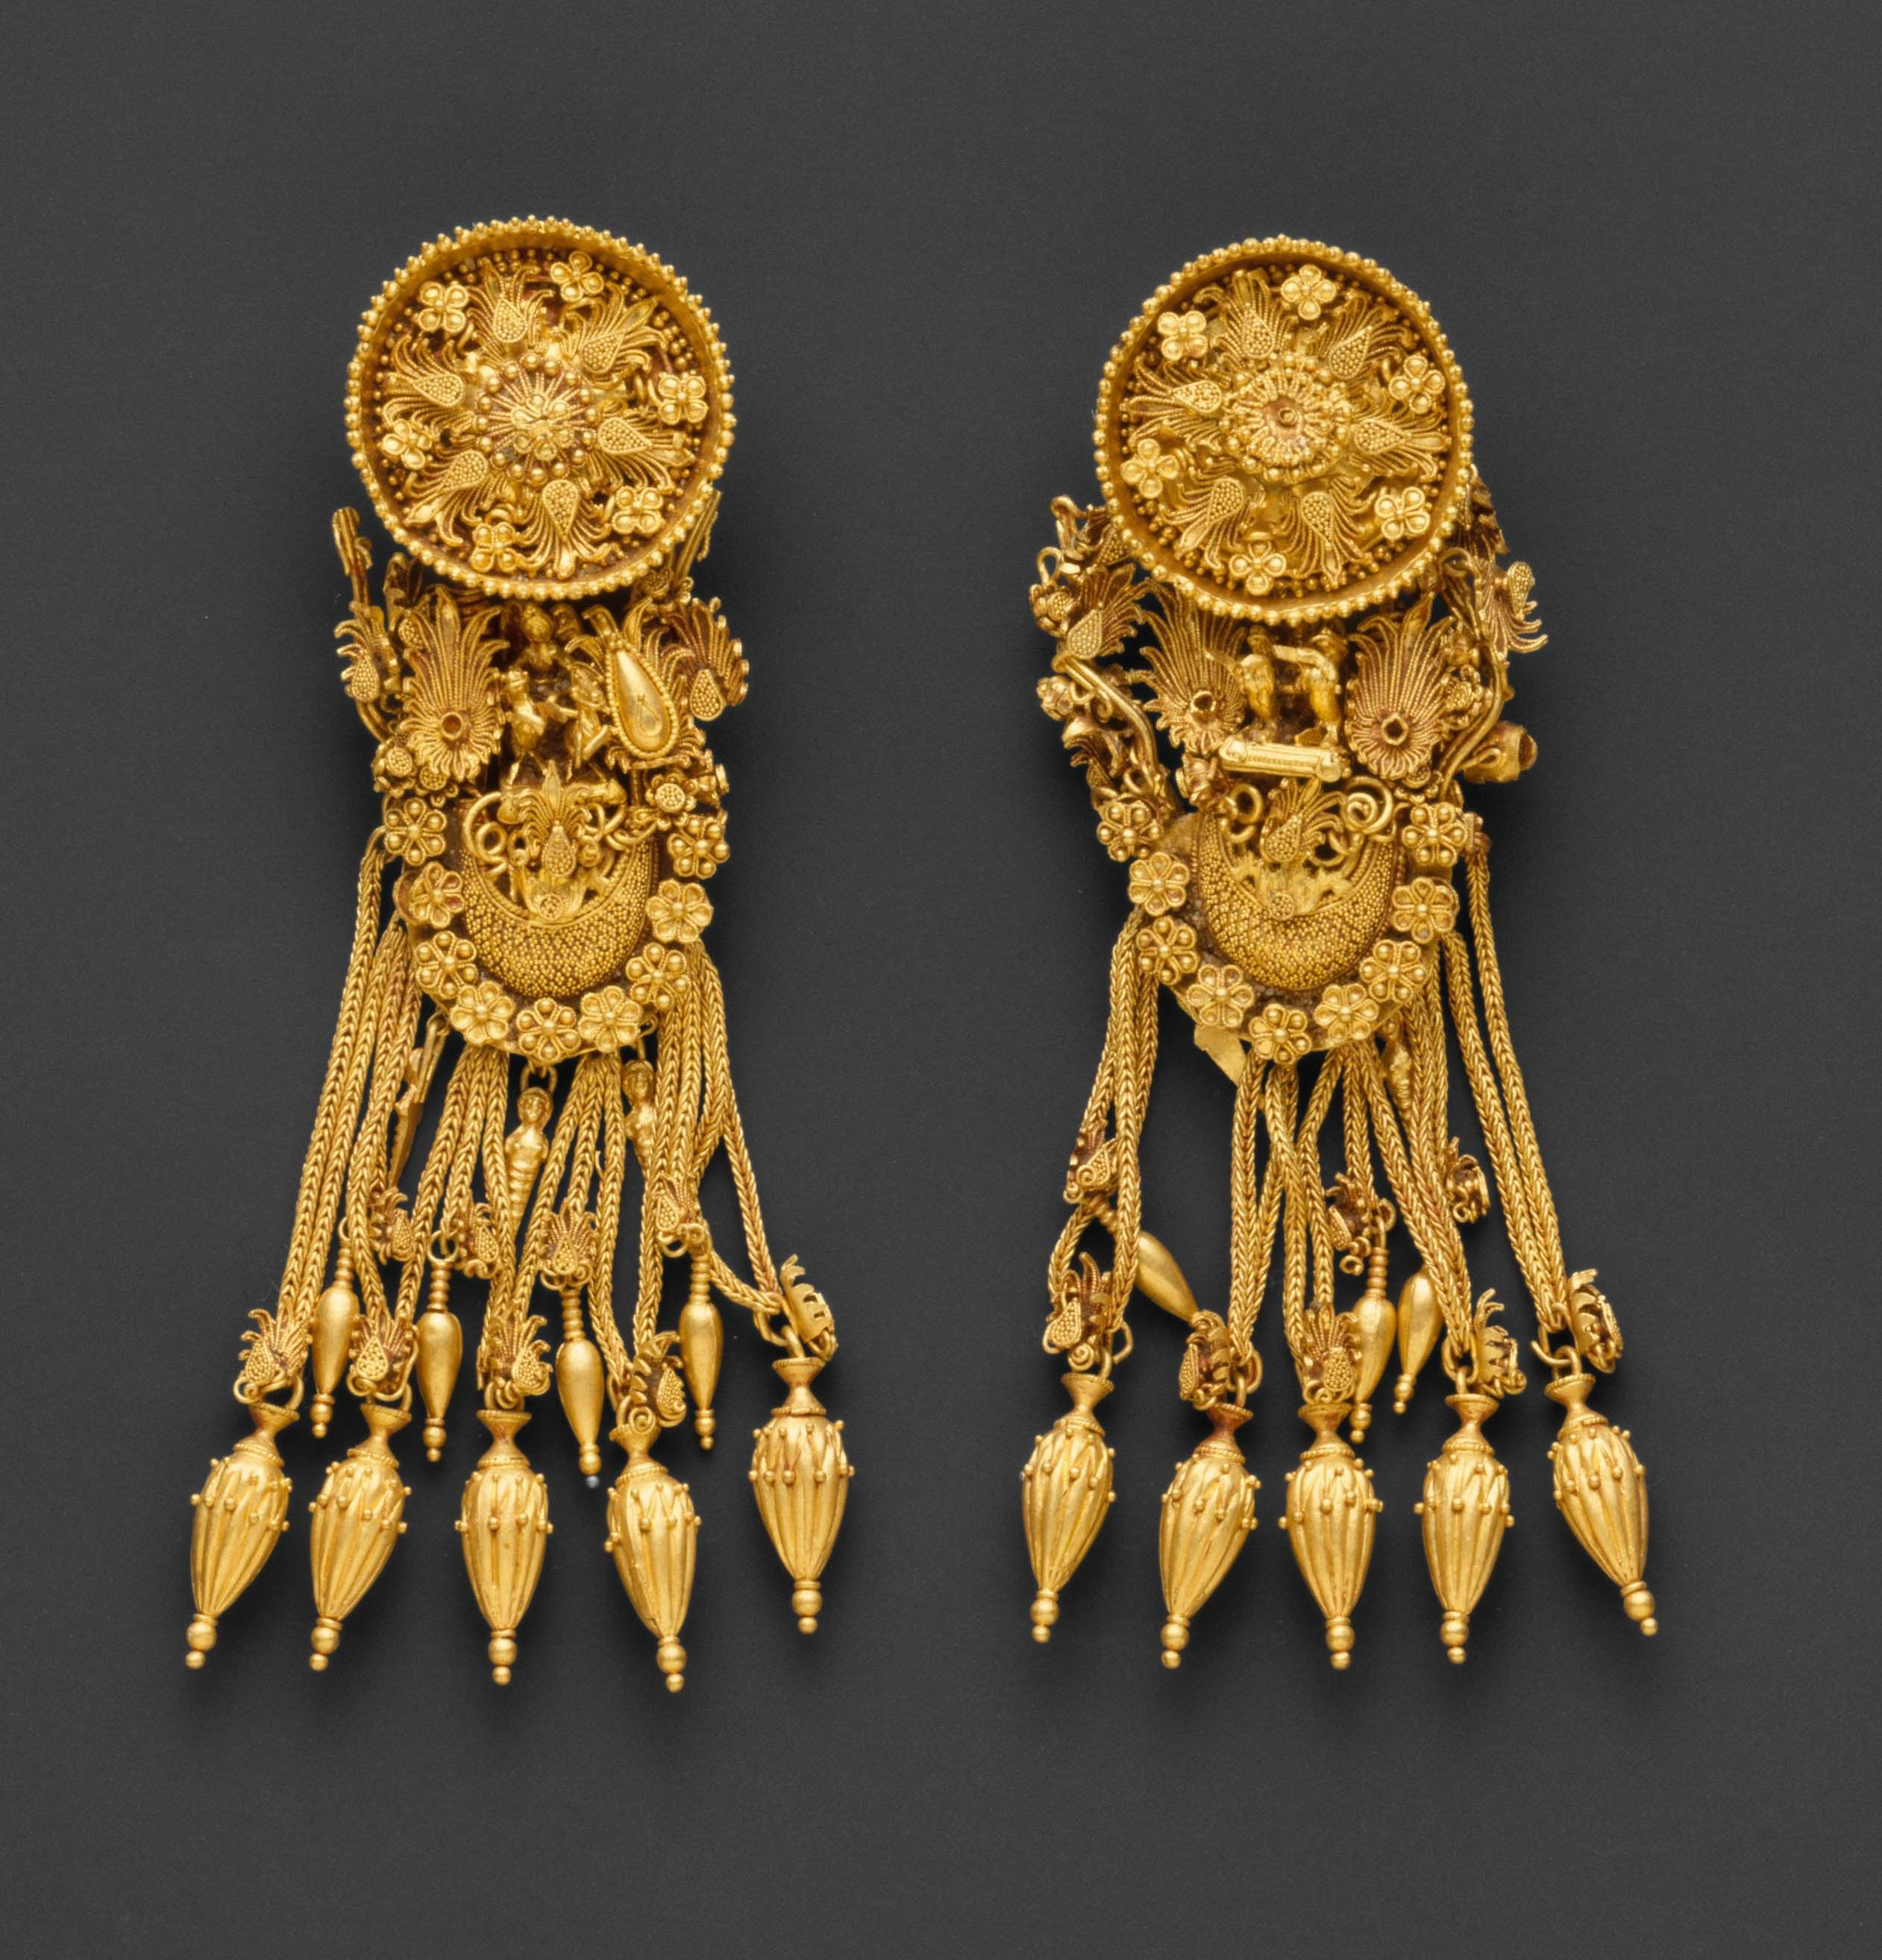 Pair Of Gold Earrings From East Greece Ca 300 Bc